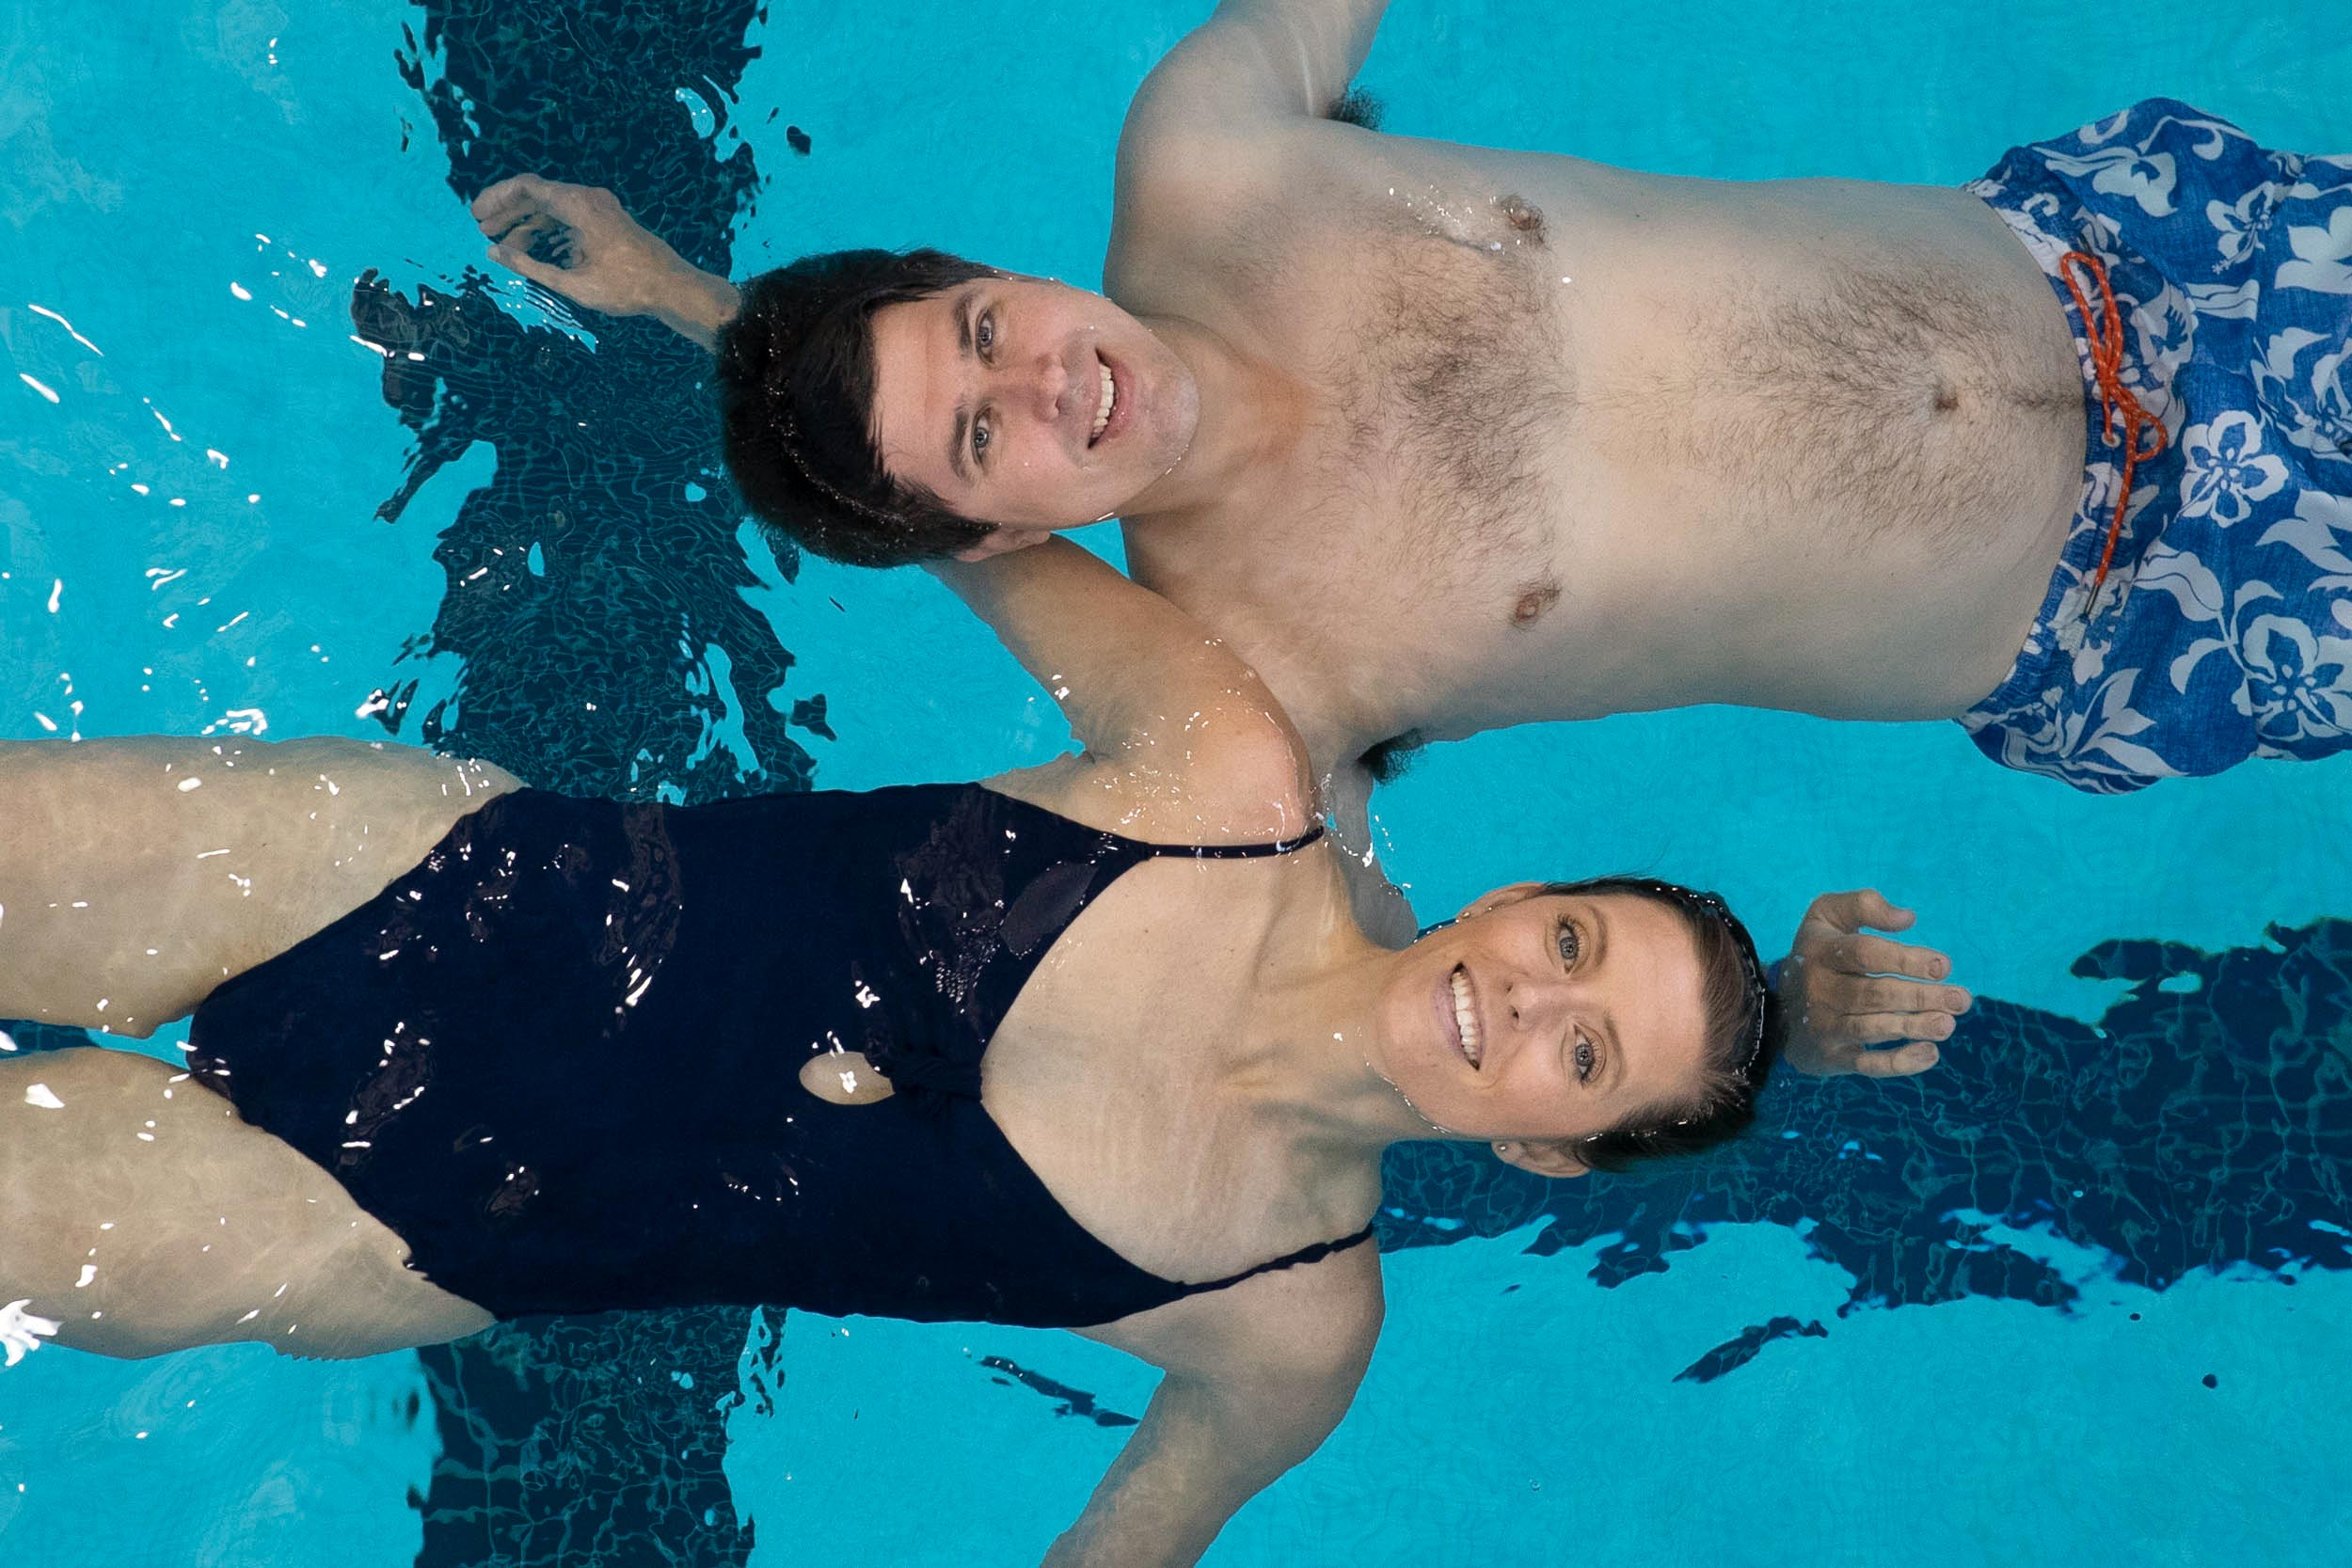 Former UVA swimmers Bo and Megan Greenwood, each seven-time All-Americans and winners of multiple ACC championships, have stayed involved in the sport through a swim school they started 10 years ago.